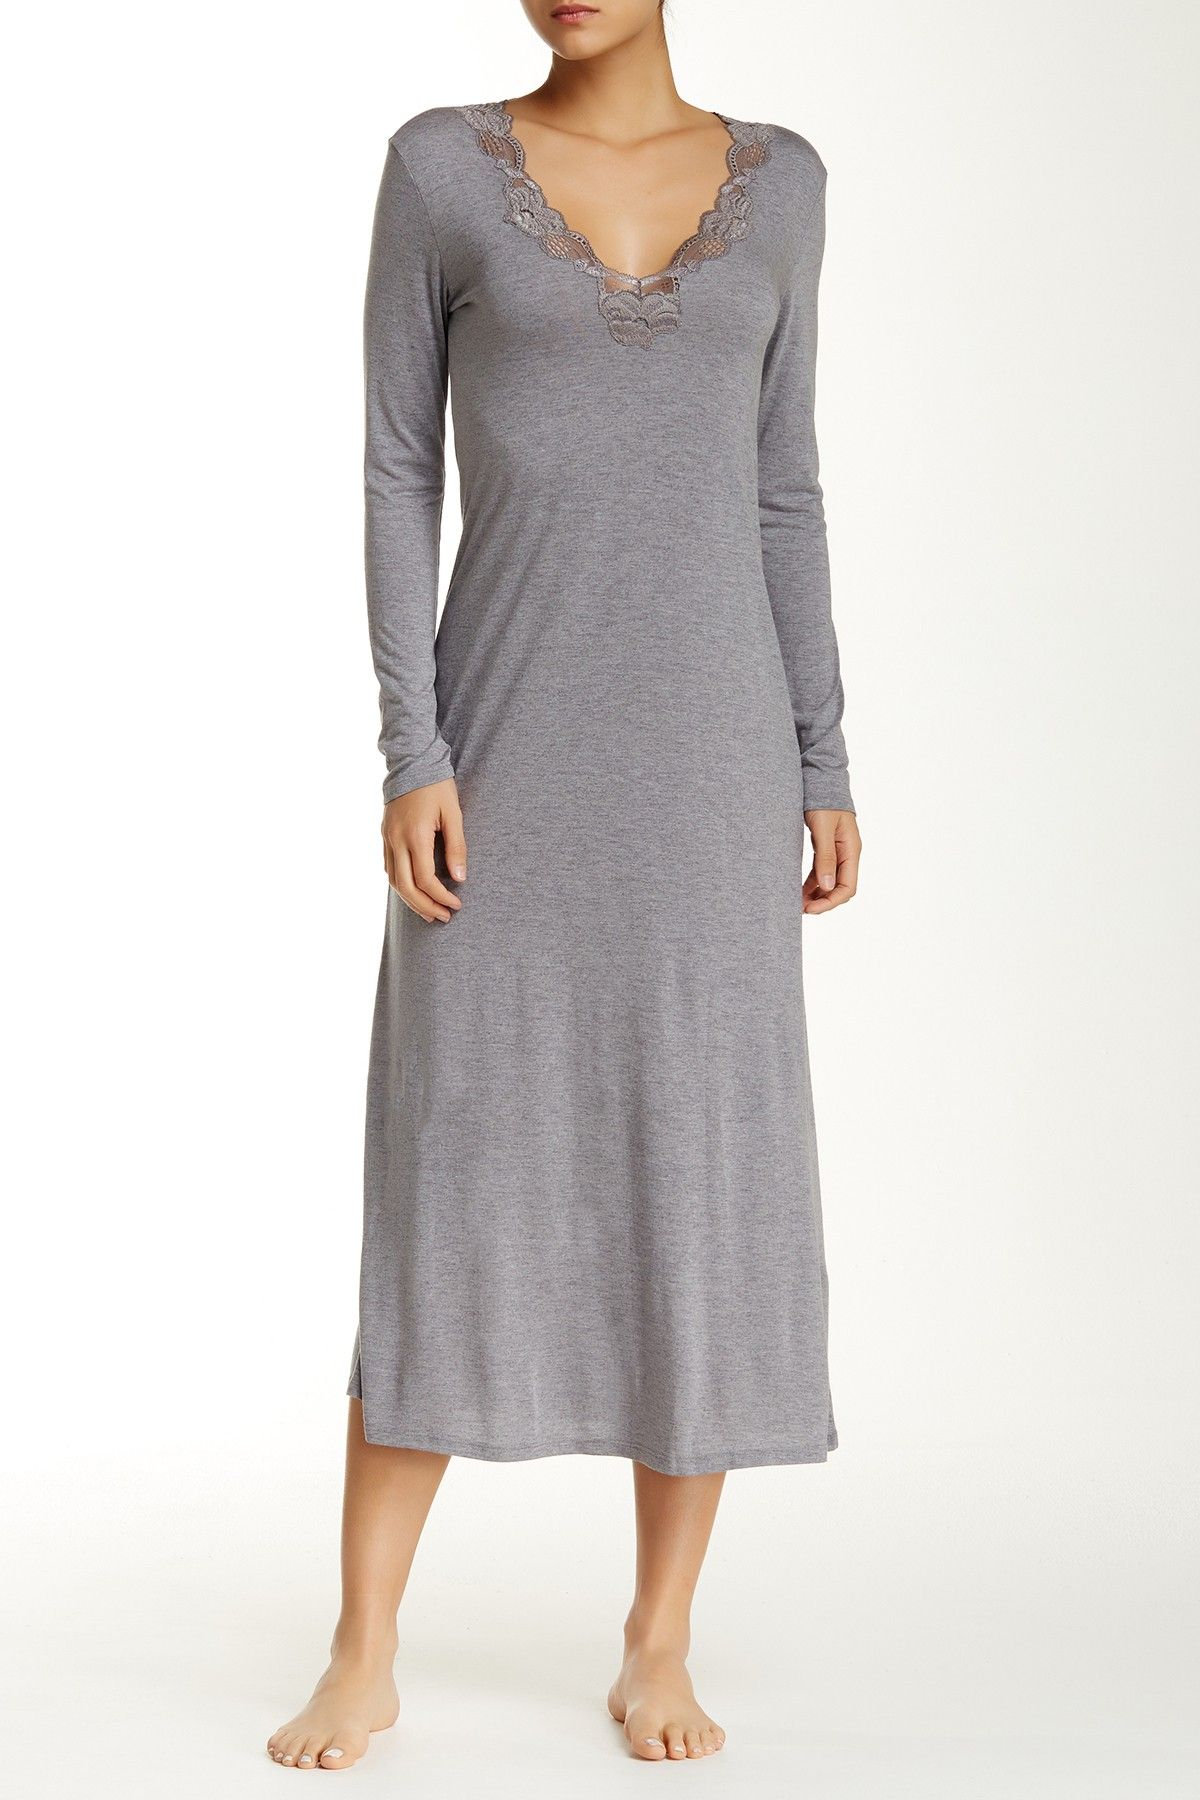 Lounger nightgown nightgown nordstrom and comfy